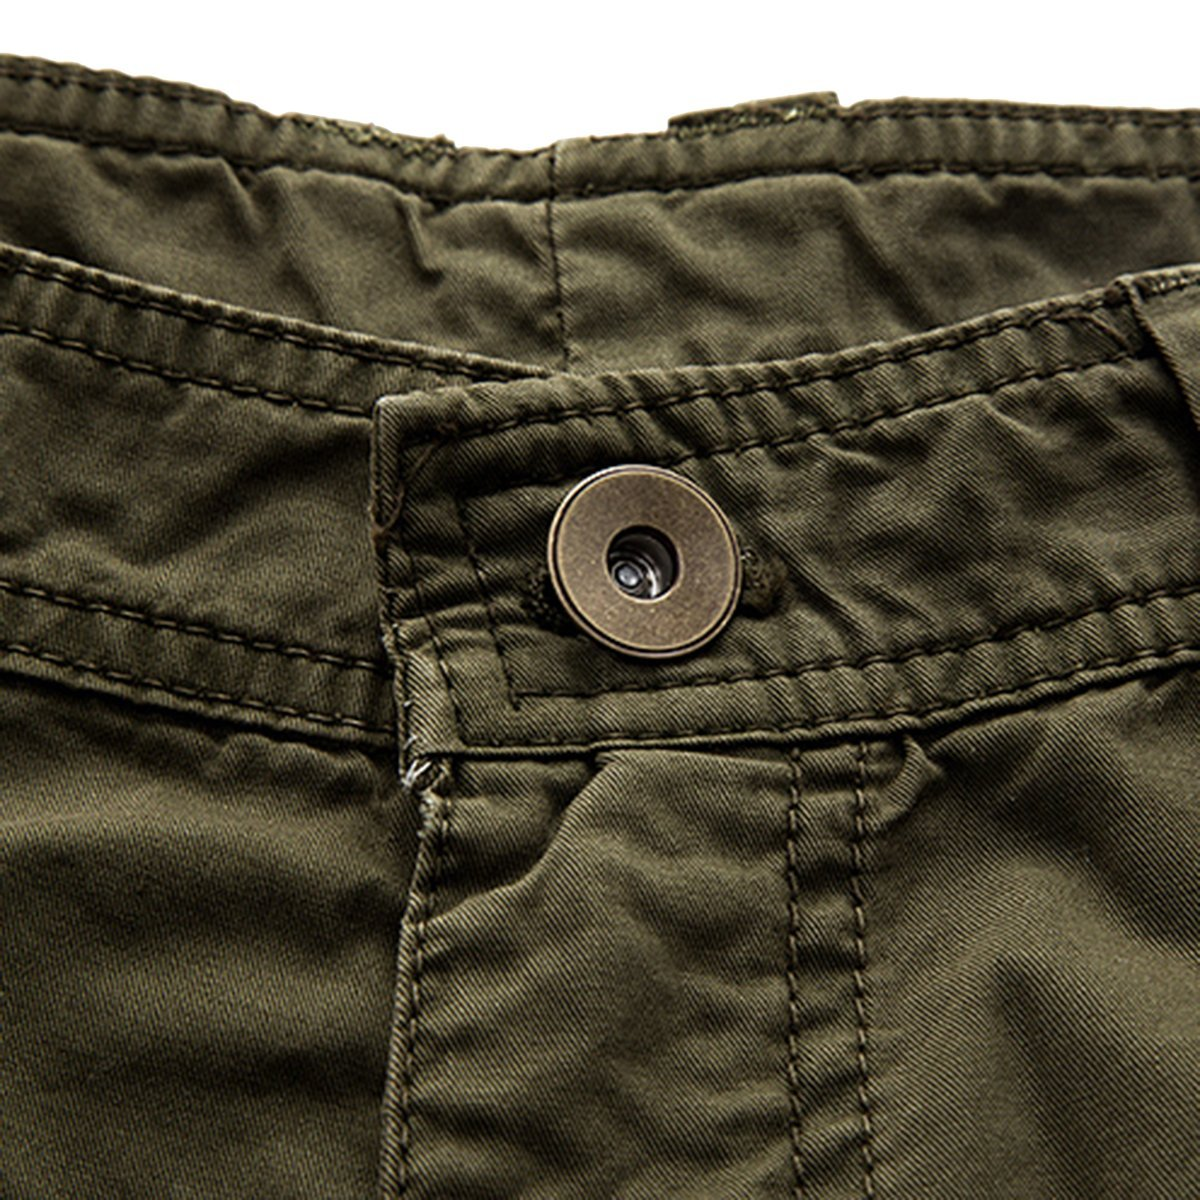 LOCALMODE Men's Casual Cotton Multi Pocket Twill Cargo Shorts Blue 36 by LOCALMODE (Image #5)